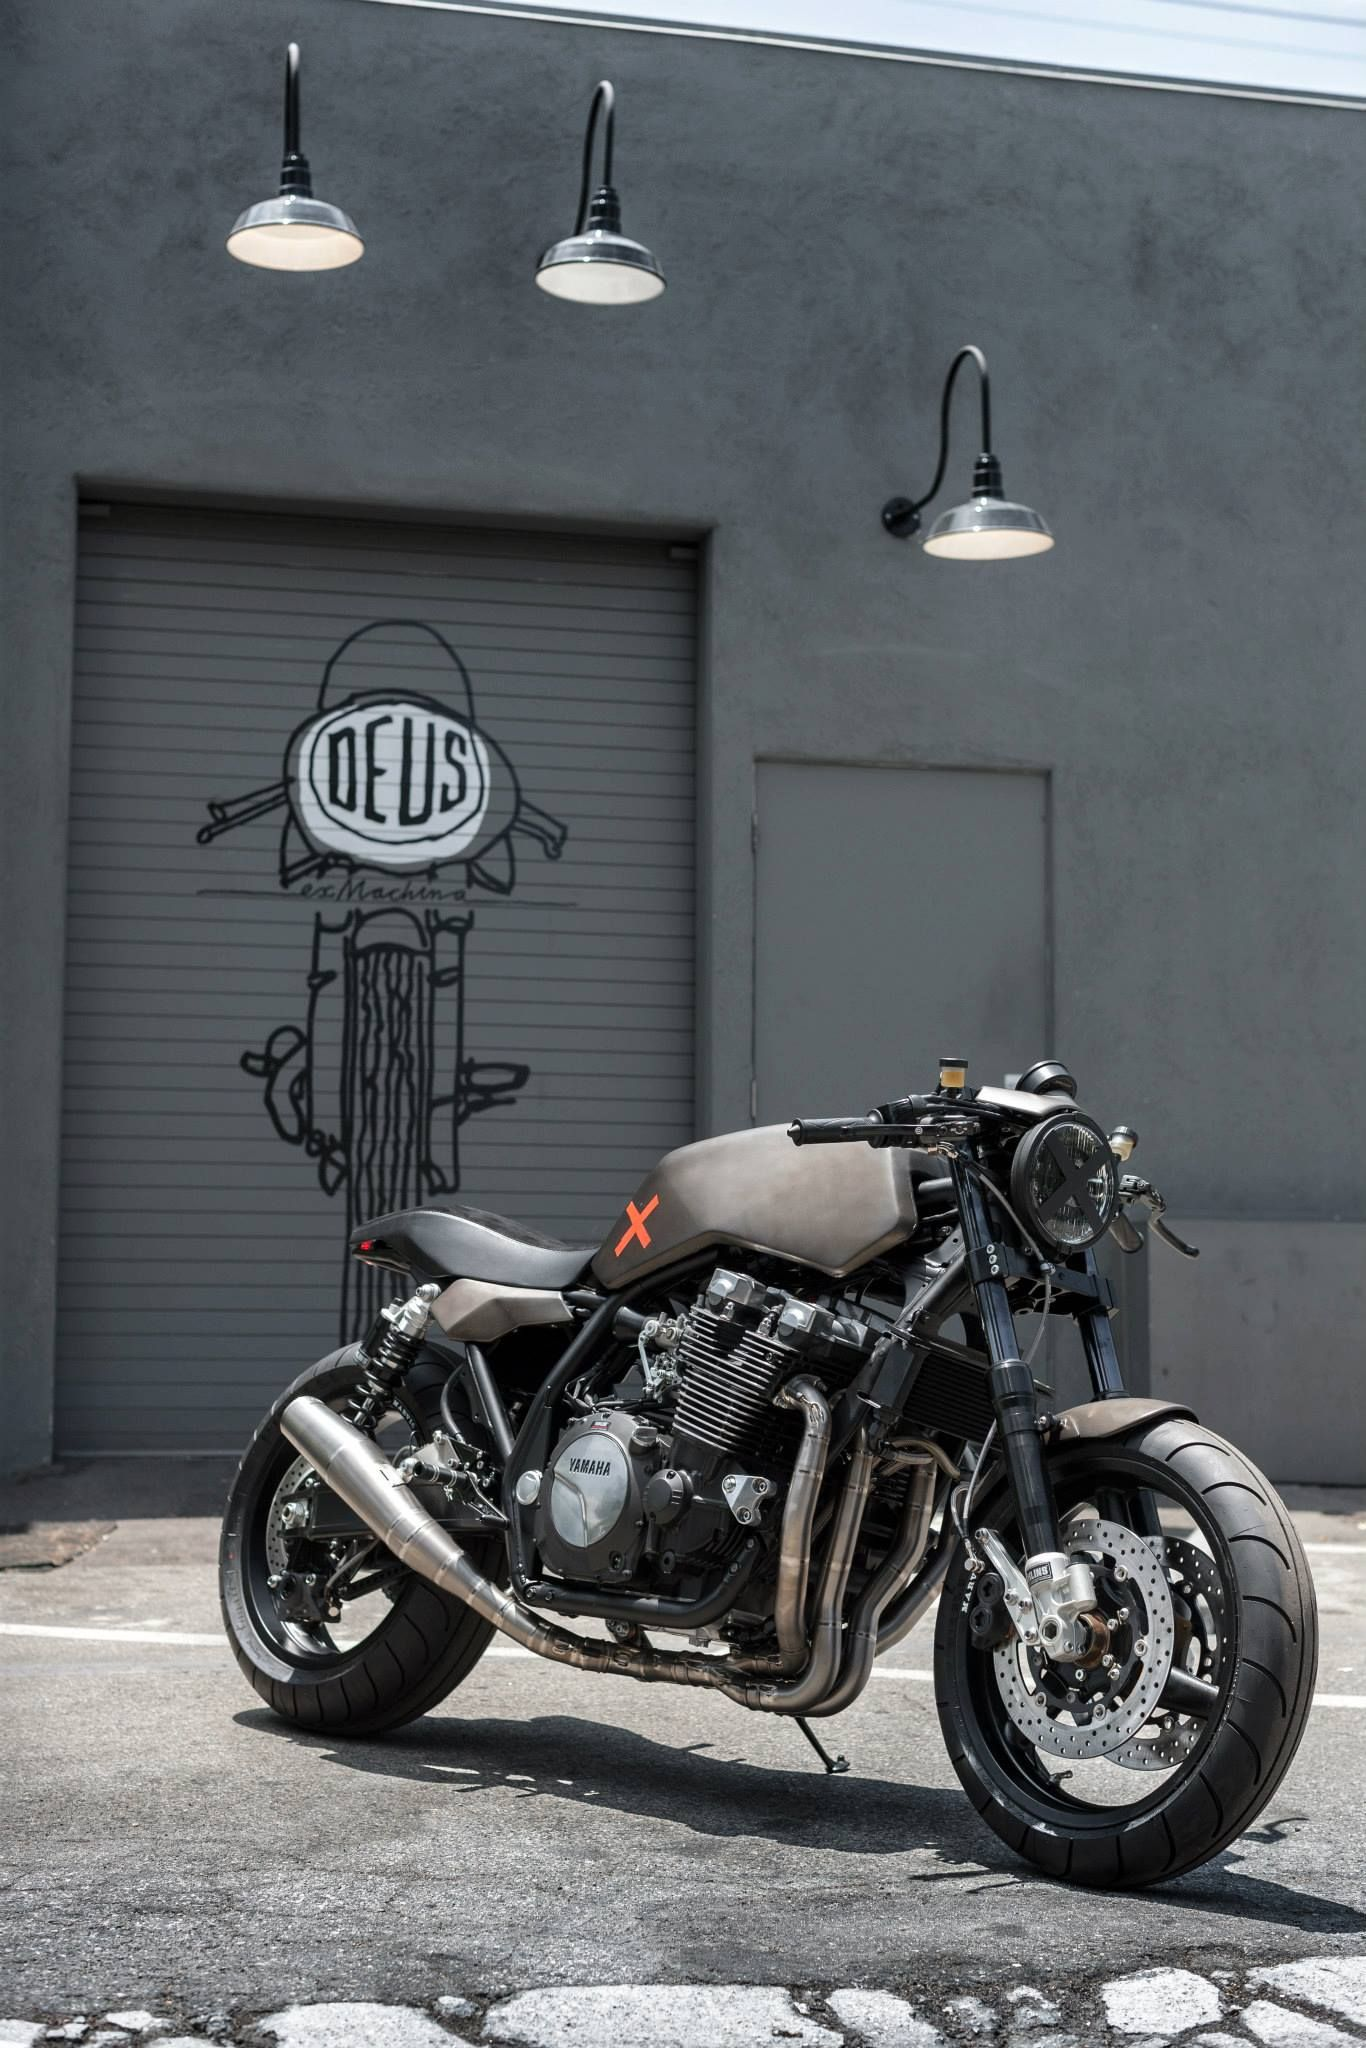 Yamaha Xjr1300 By Deus Motorcycle Cafe Racer Bike Exif